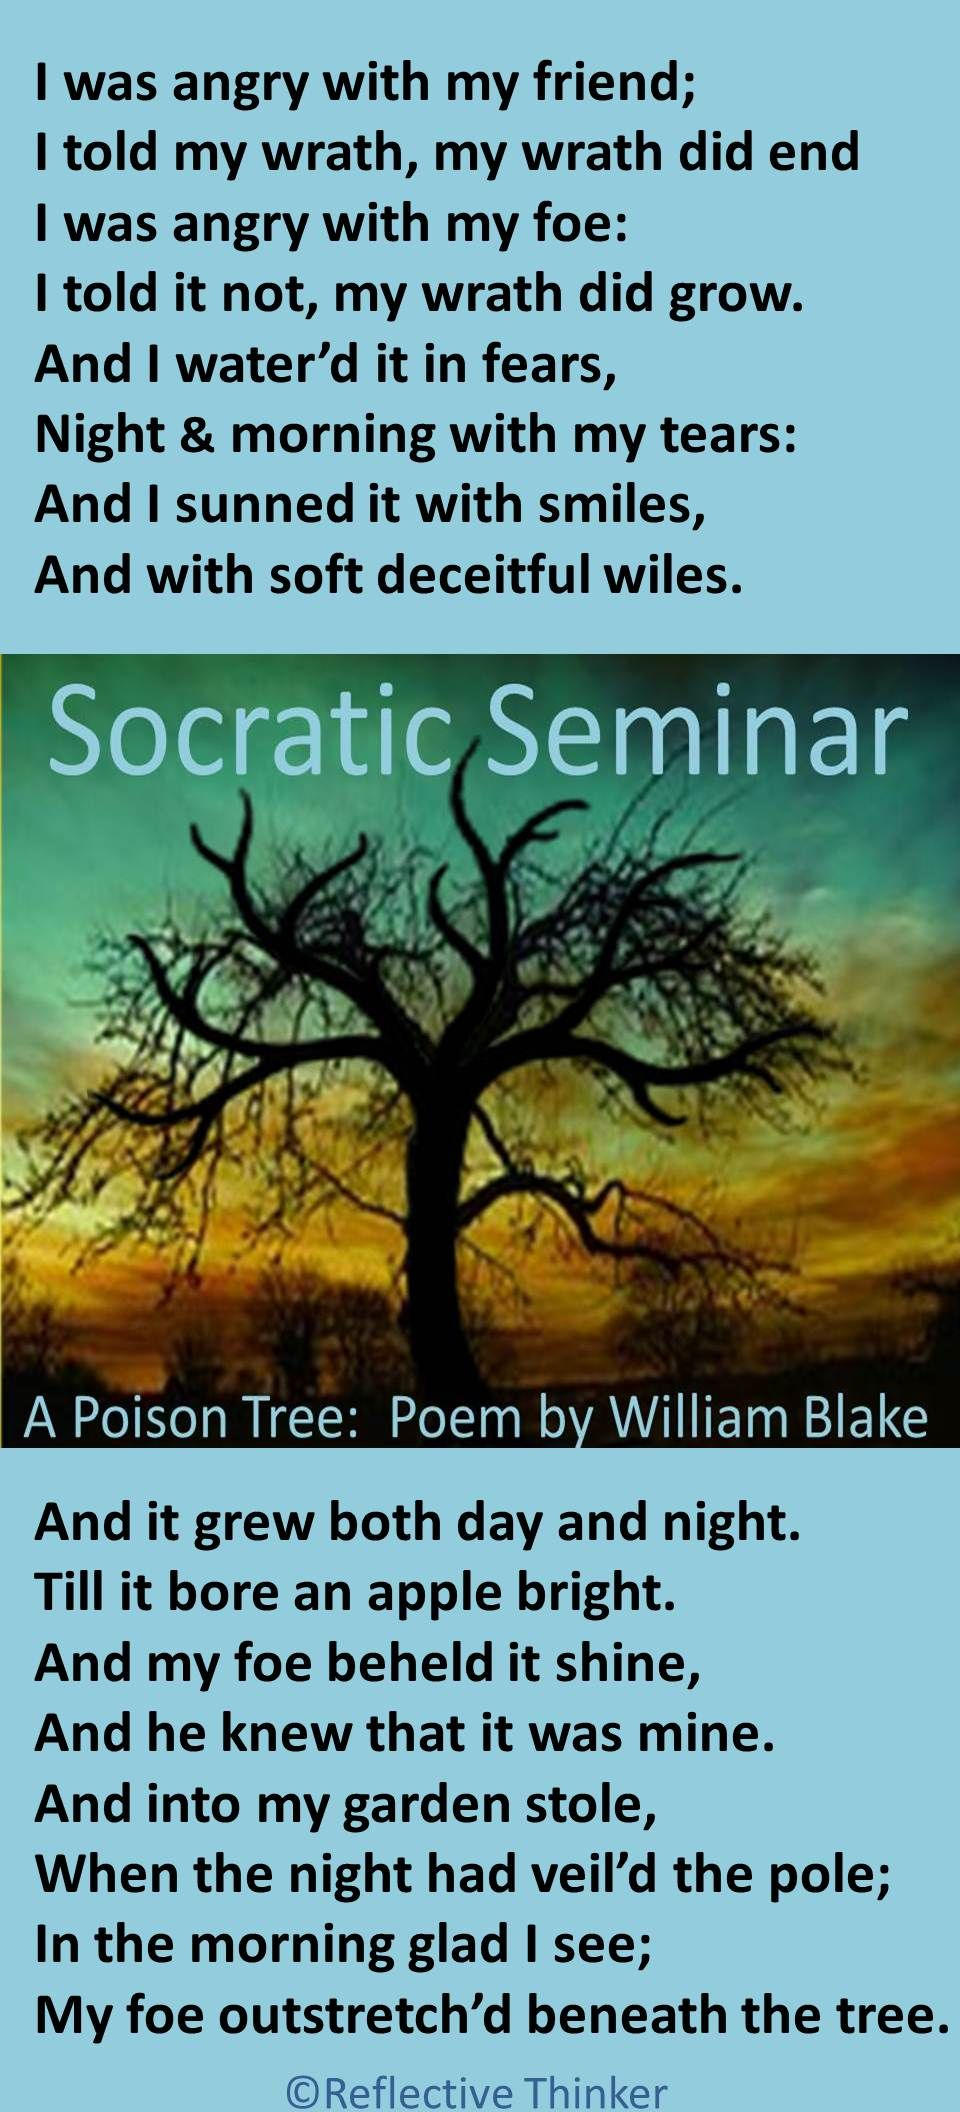 socratic seminar activities poem analysis annabel lee by socratic seminar poetry analysis activities a poison tree by william blake